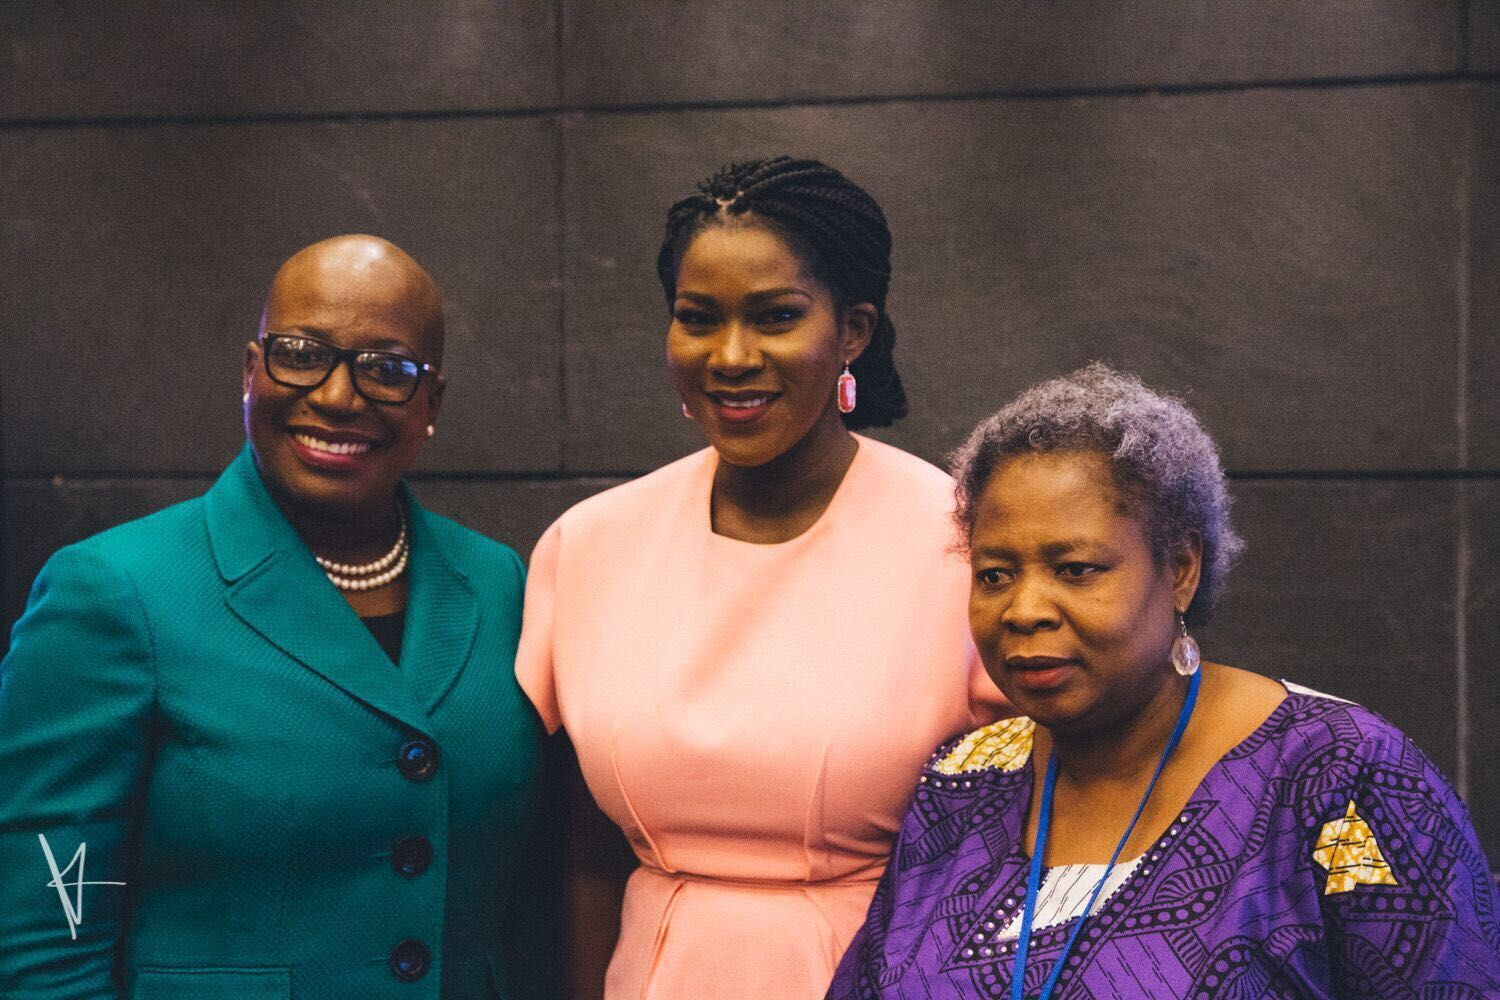 Gale Rigobert, Deputy Leader of United Workers Party, Saint Lucia; Stephanie Linus & Ene Ede, Gender Advisor, Search for Common Ground